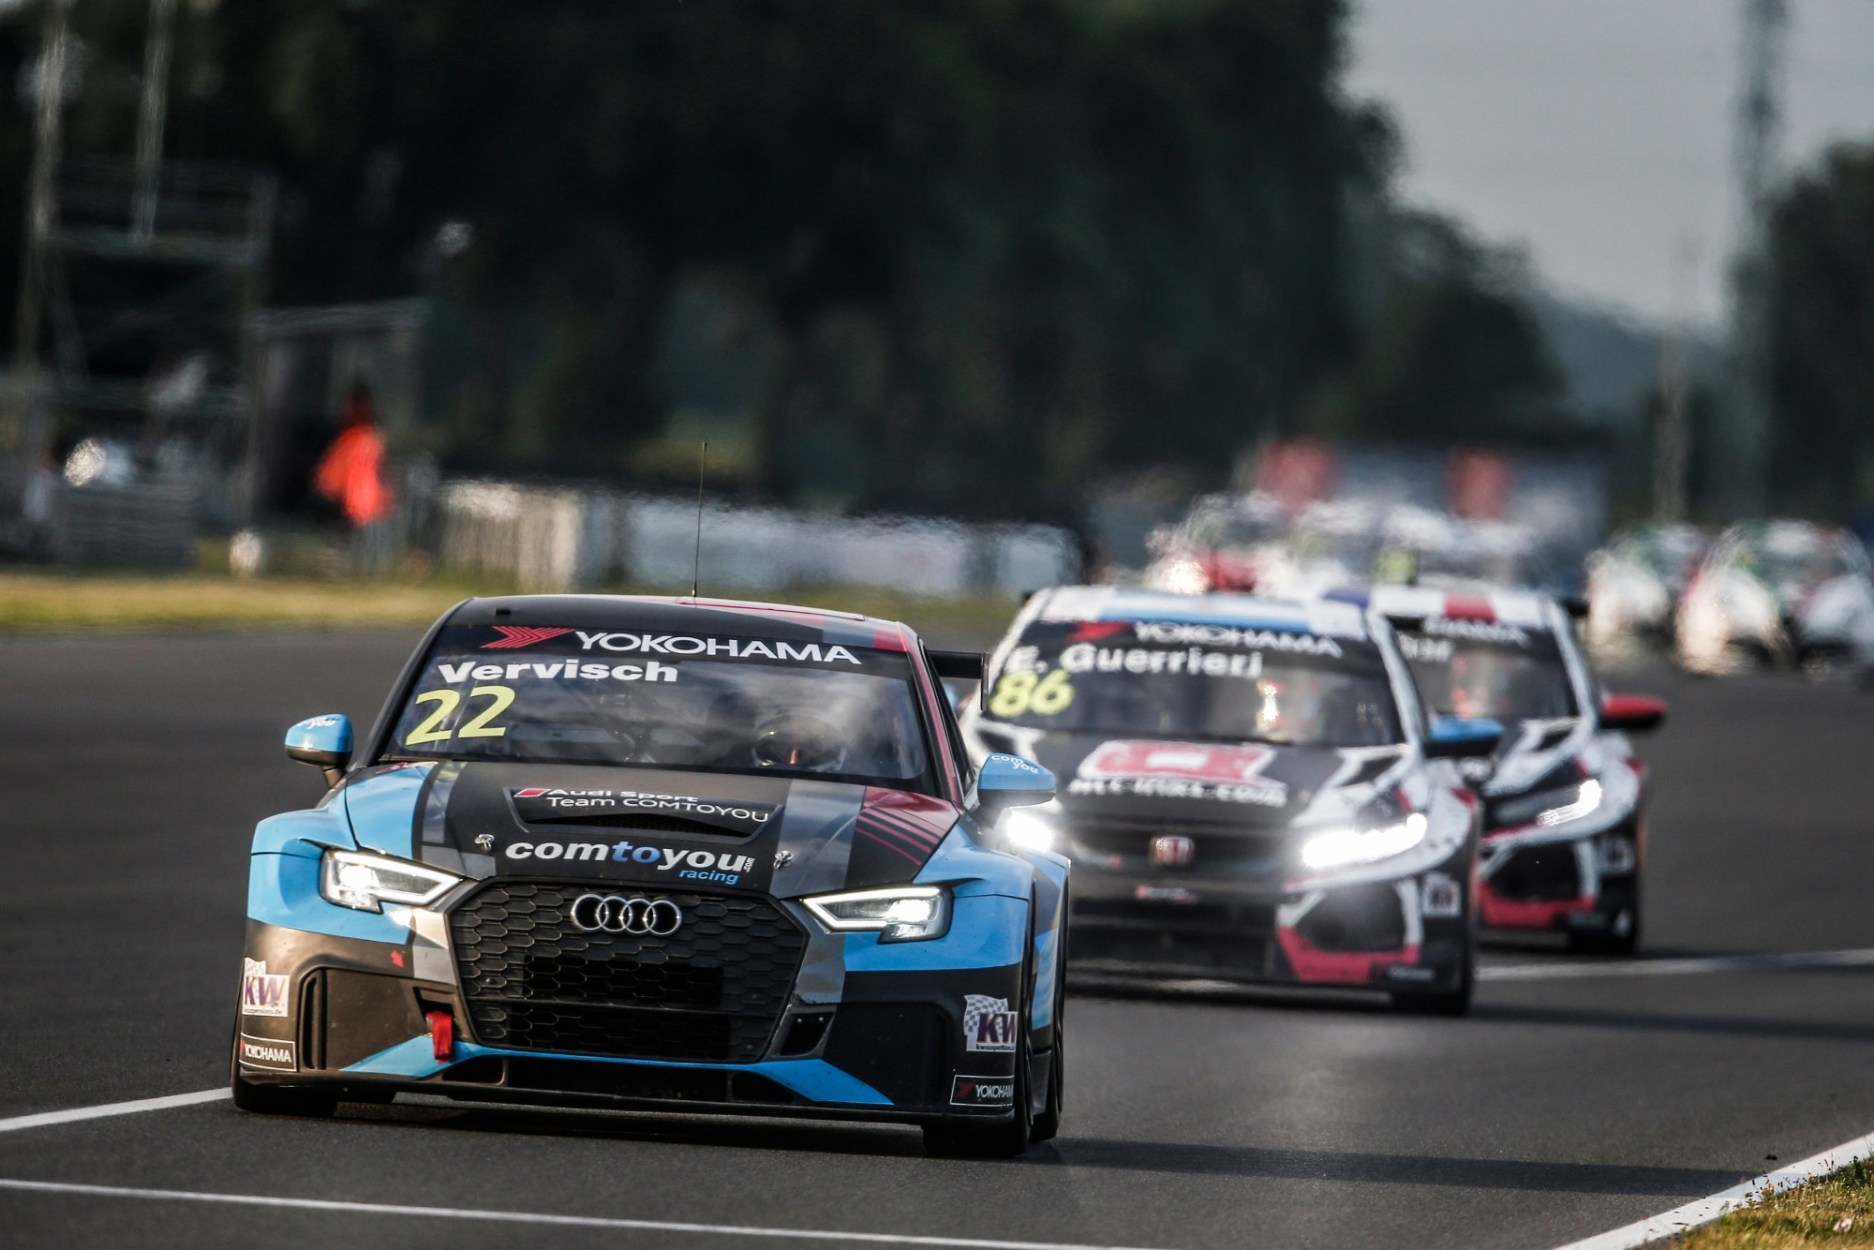 Two Podium Finishes for Audi Sport at the Slovakiaring